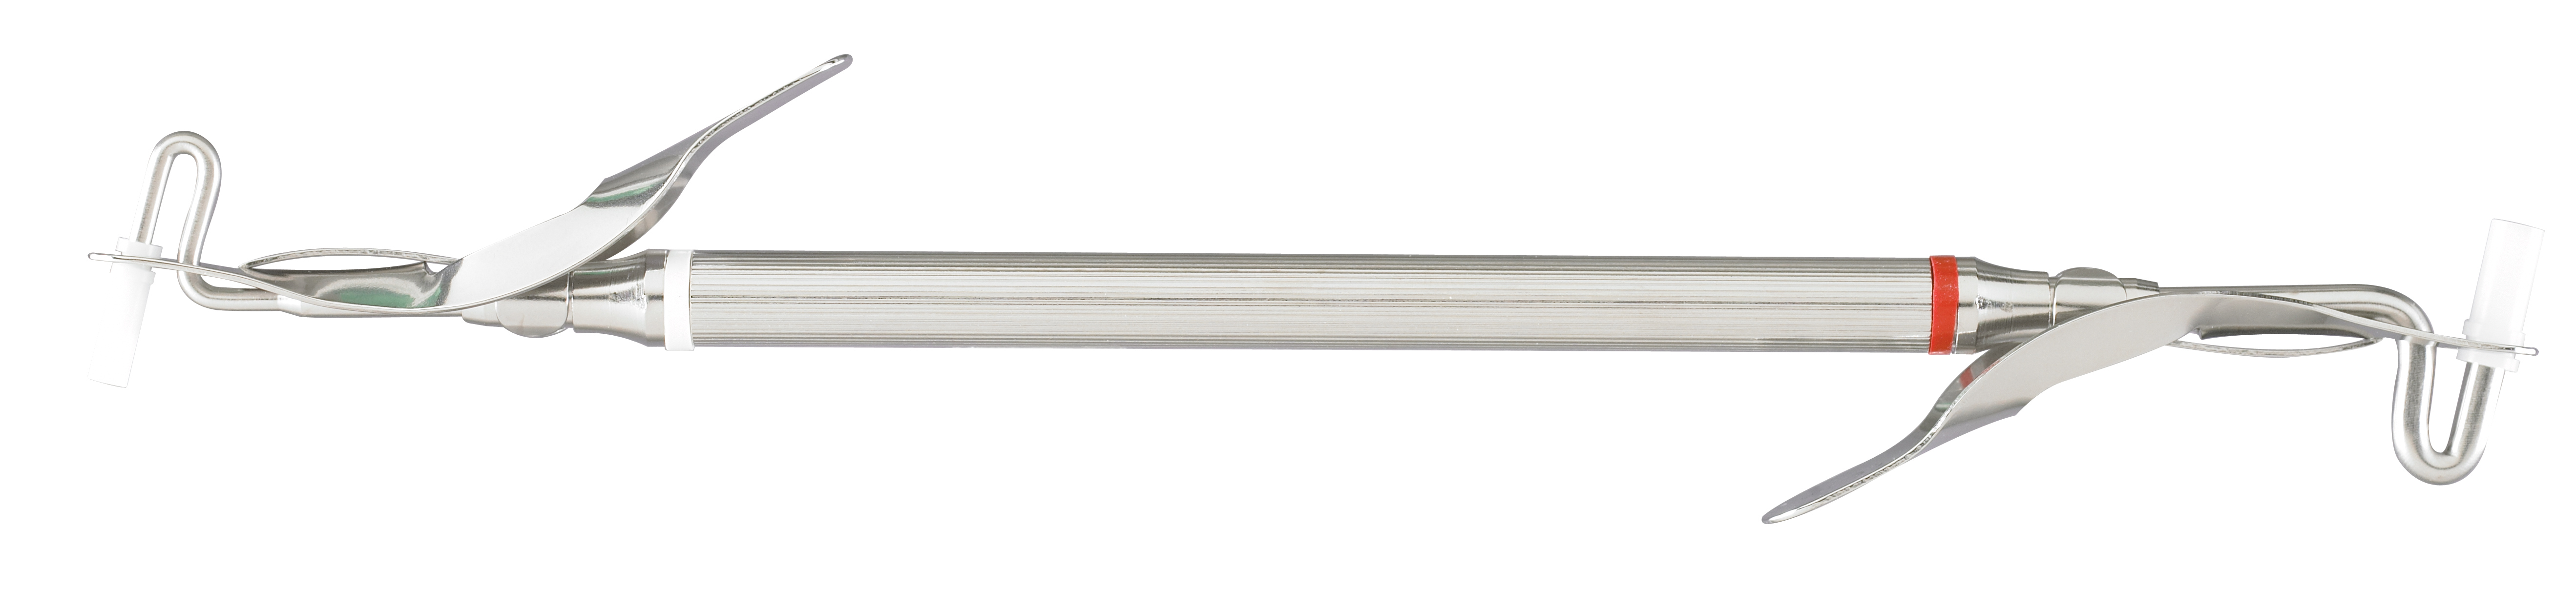 amalgam-carrier-lever-type-delrin-tips-double-end-medium-jumo-delrin-tip-71-65-miltex.jpg